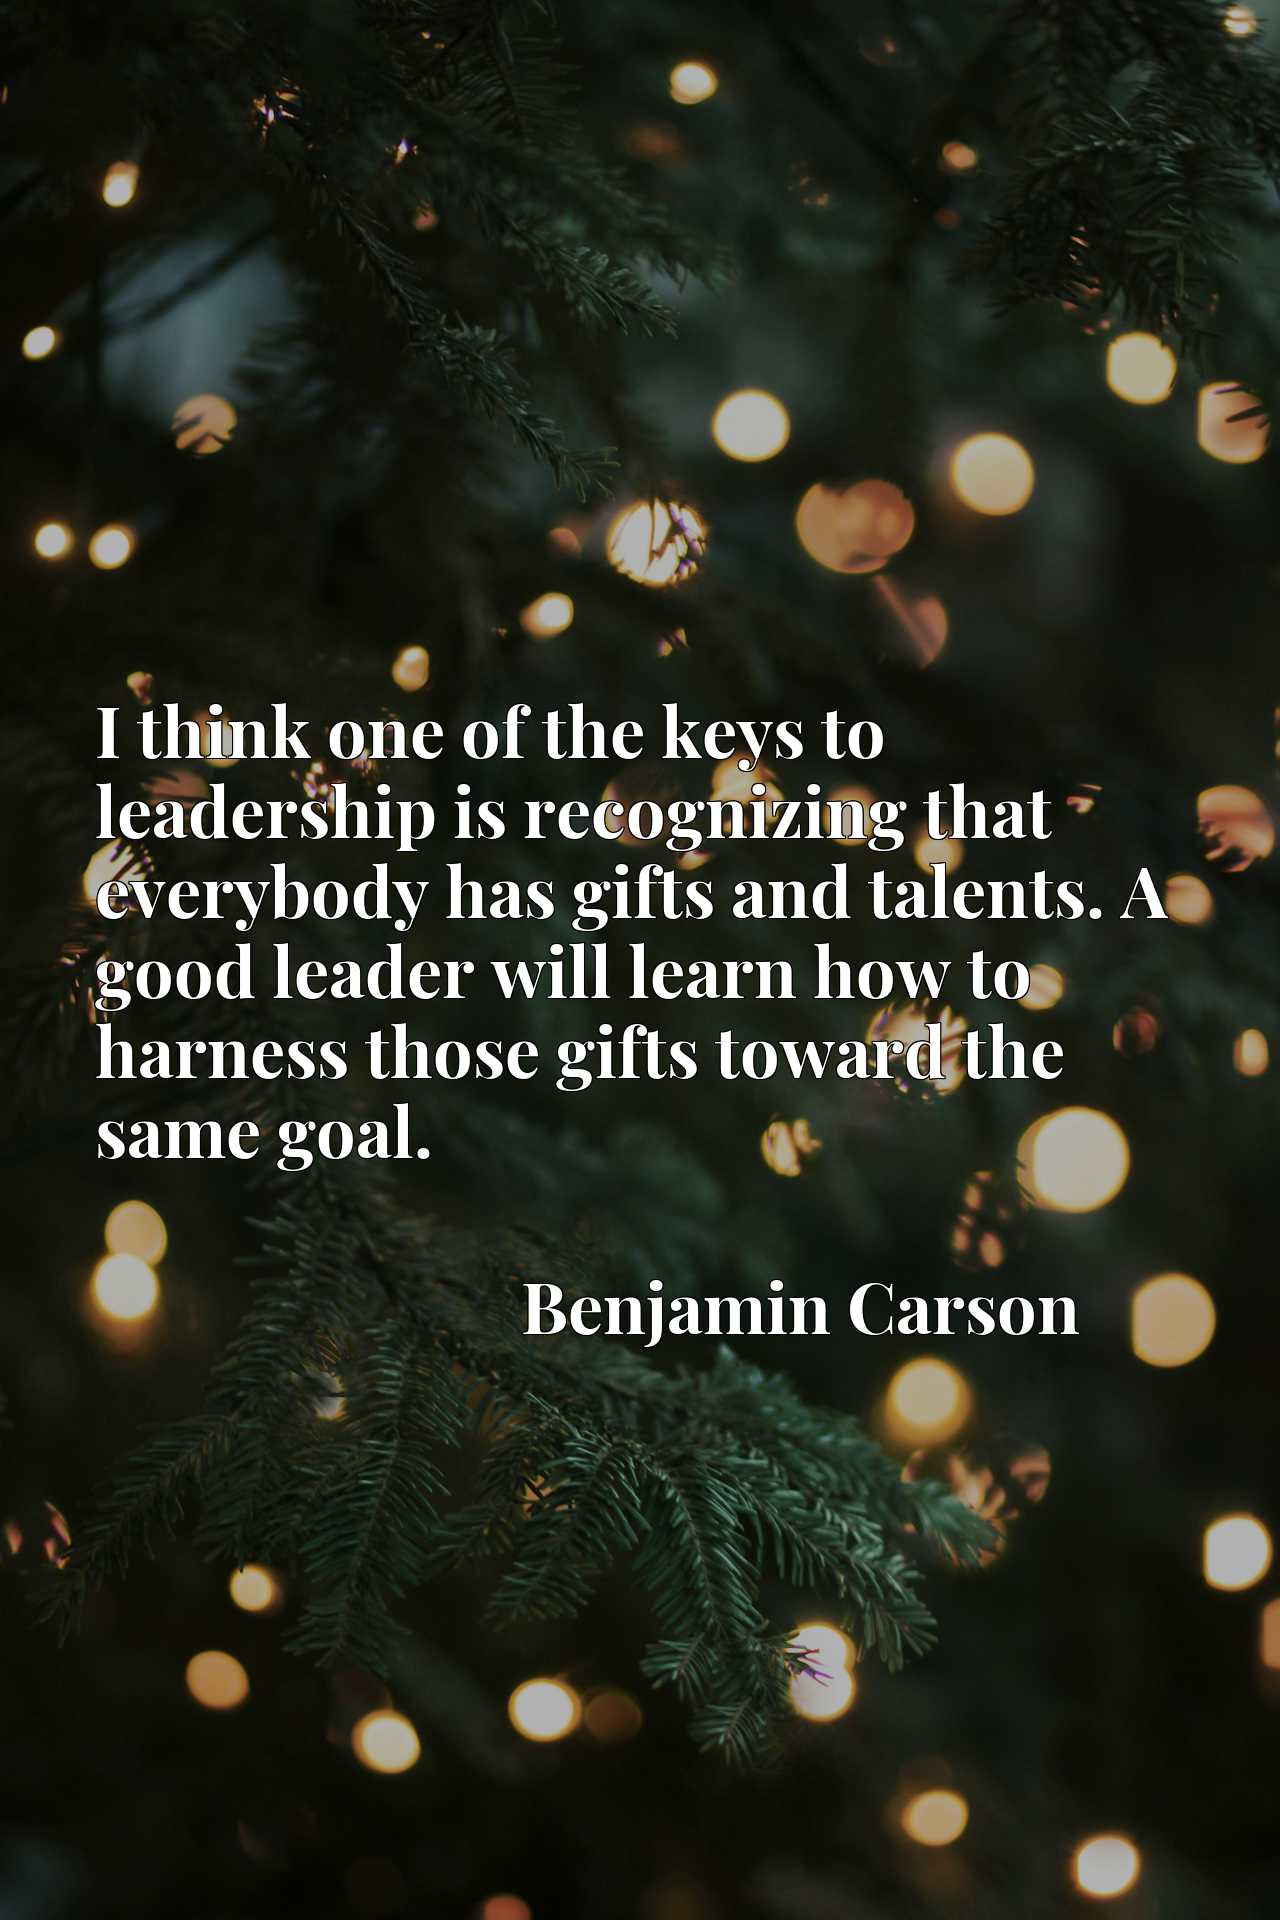 I think one of the keys to leadership is recognizing that everybody has gifts and talents. A good leader will learn how to harness those gifts toward the same goal.